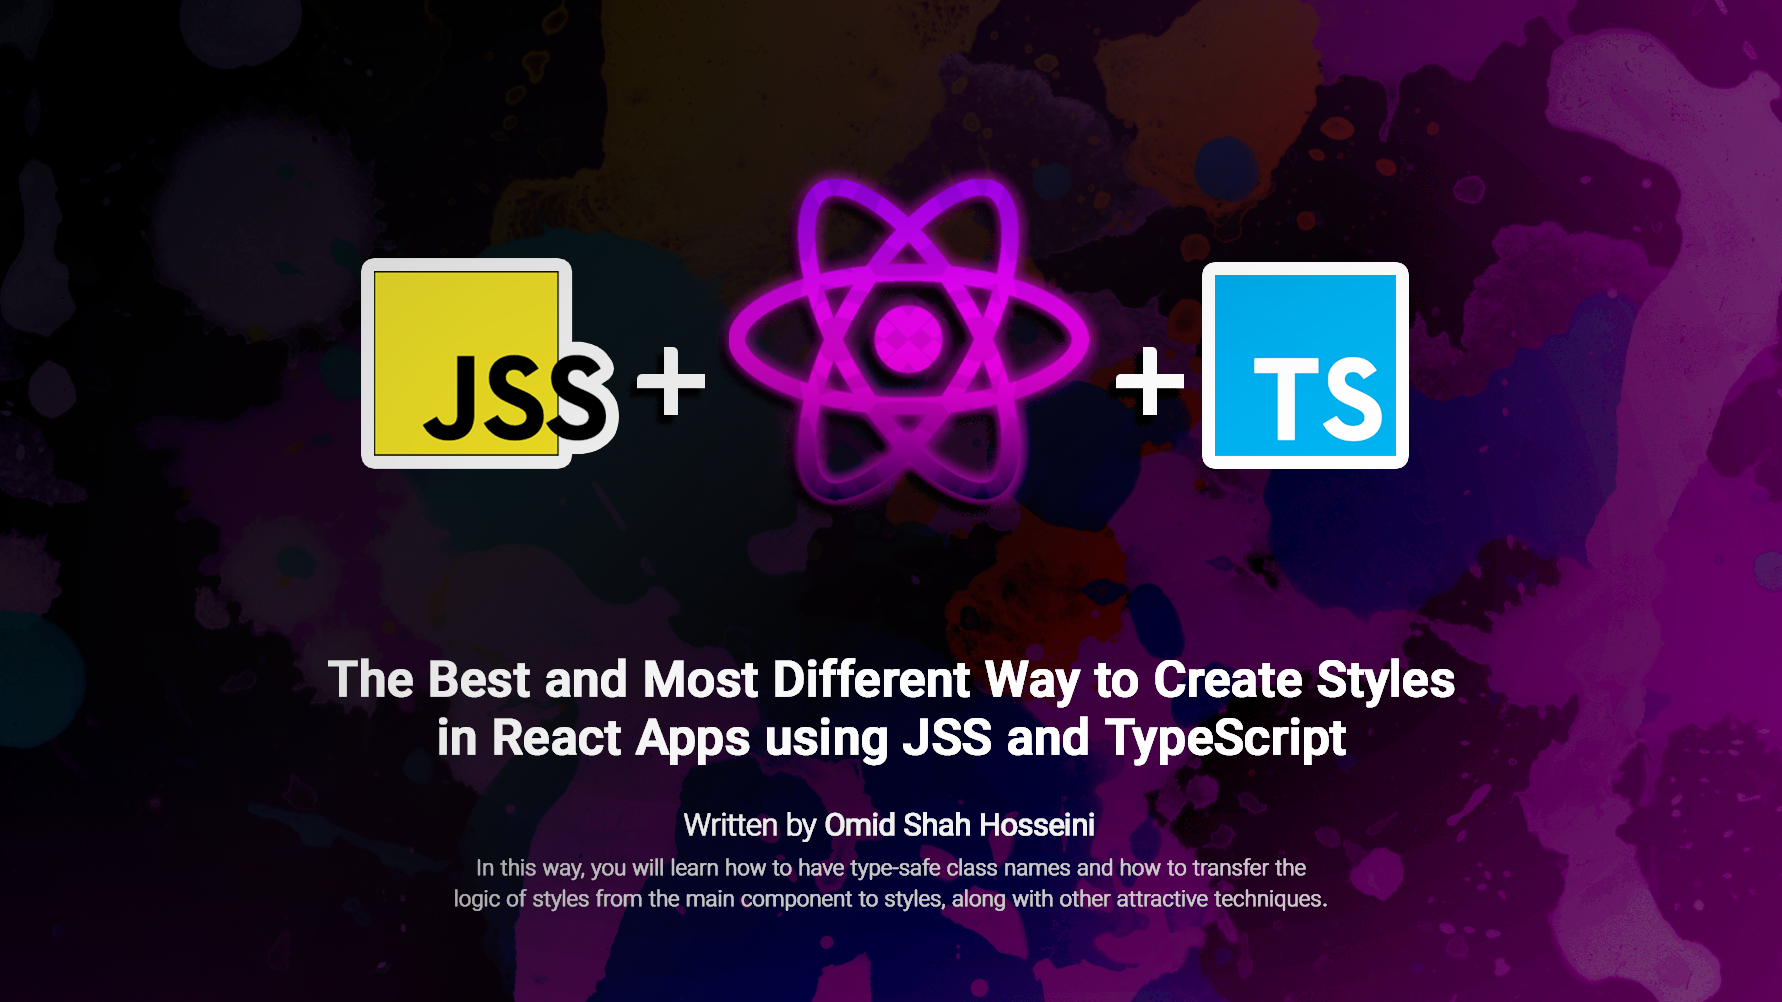 The Best and Most Different Way to Create Styles in React Apps using JSS and TypeScript